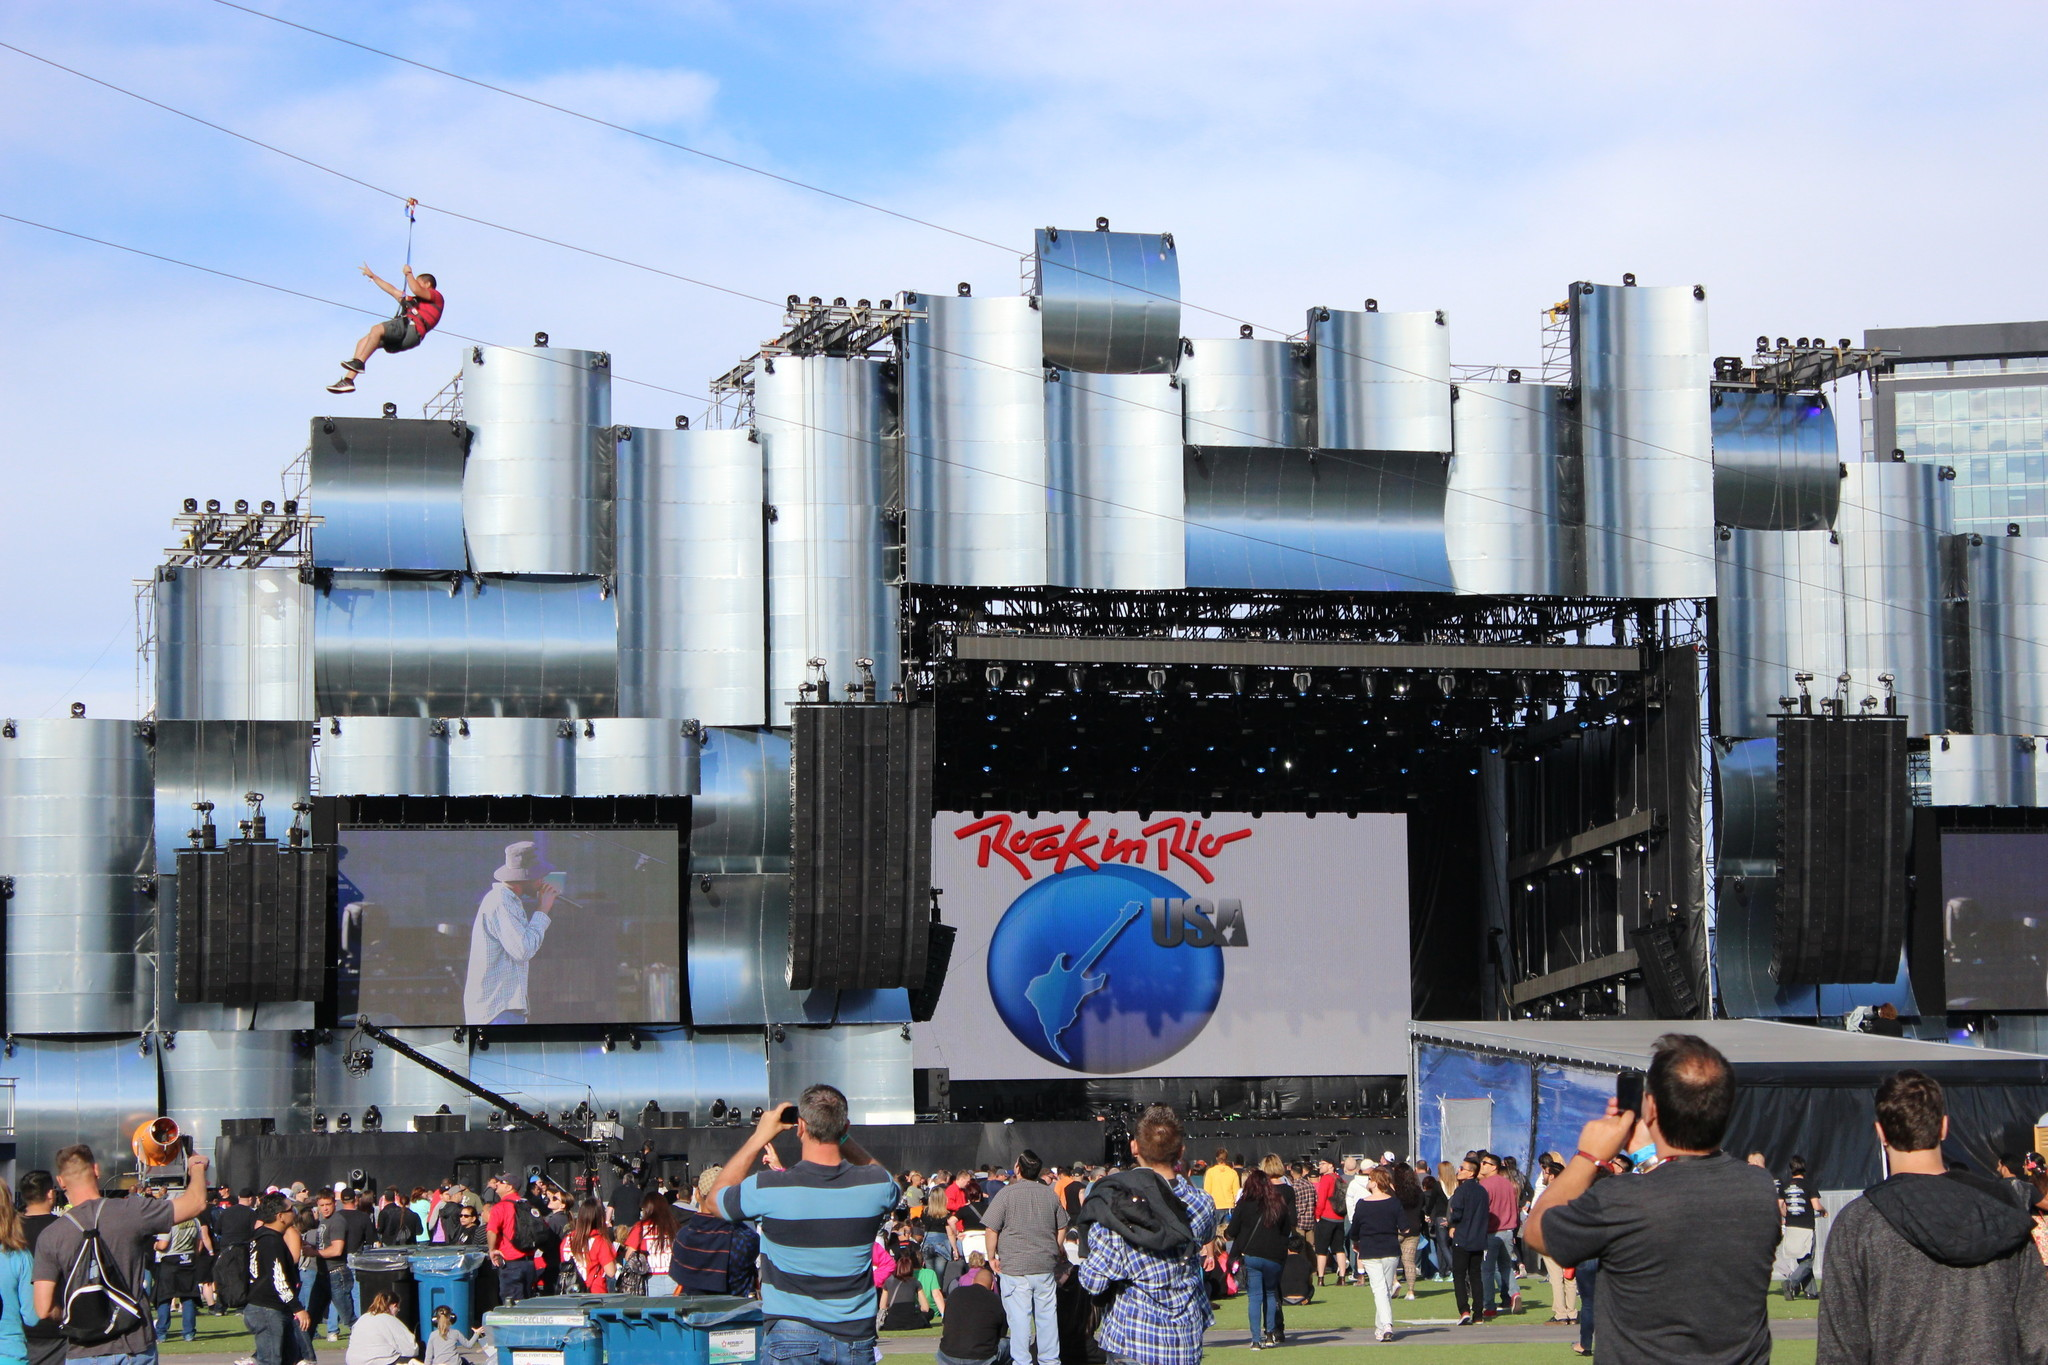 Rock in Rio USA en fotos - Chicago Tribune